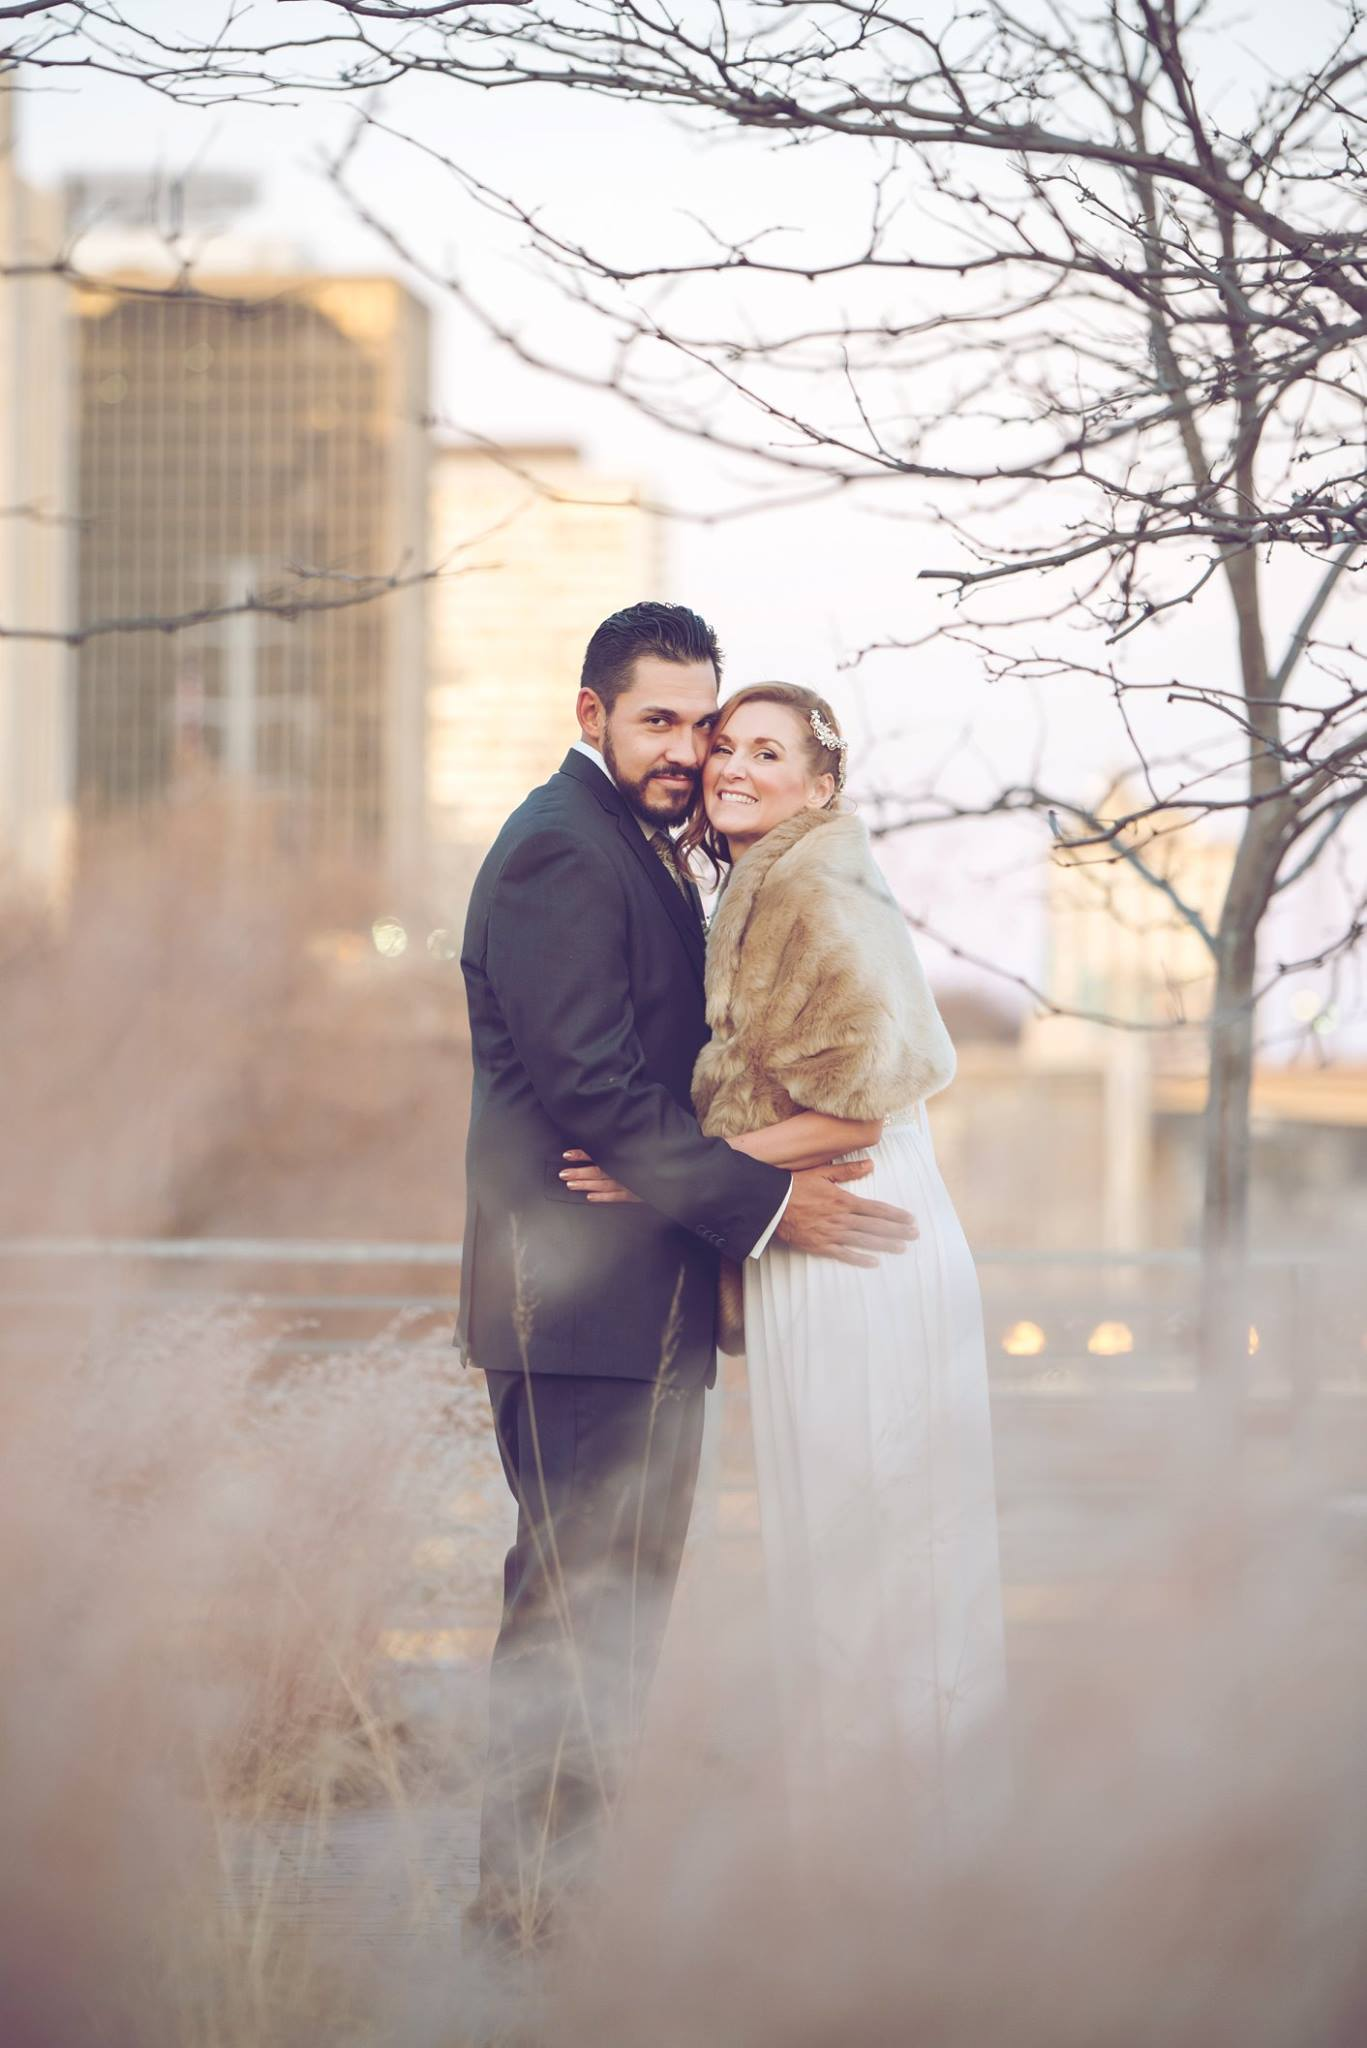 Danielle Albrecht all inclusive wedding photographer for fab weddings, winter wedding